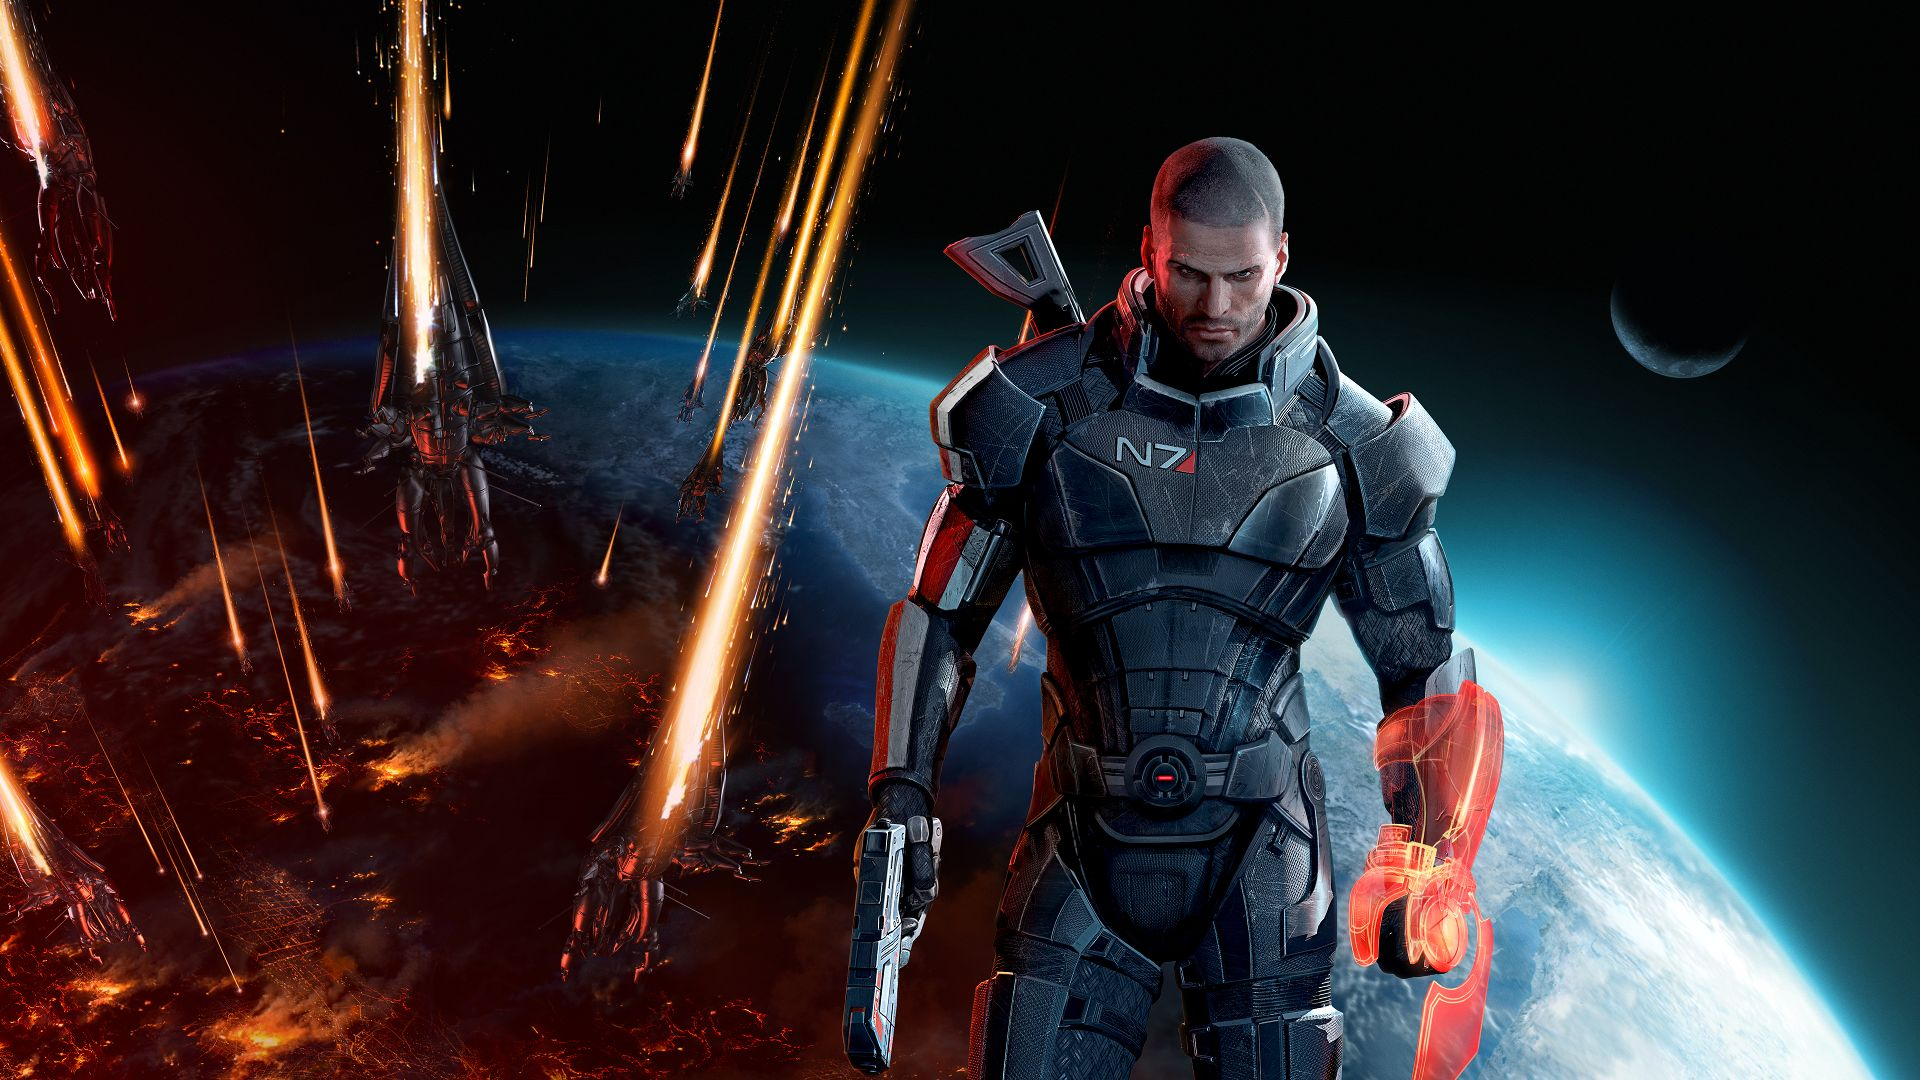 Mass Effect 2 & 3 now available on Xbox Backwards Compatibility!